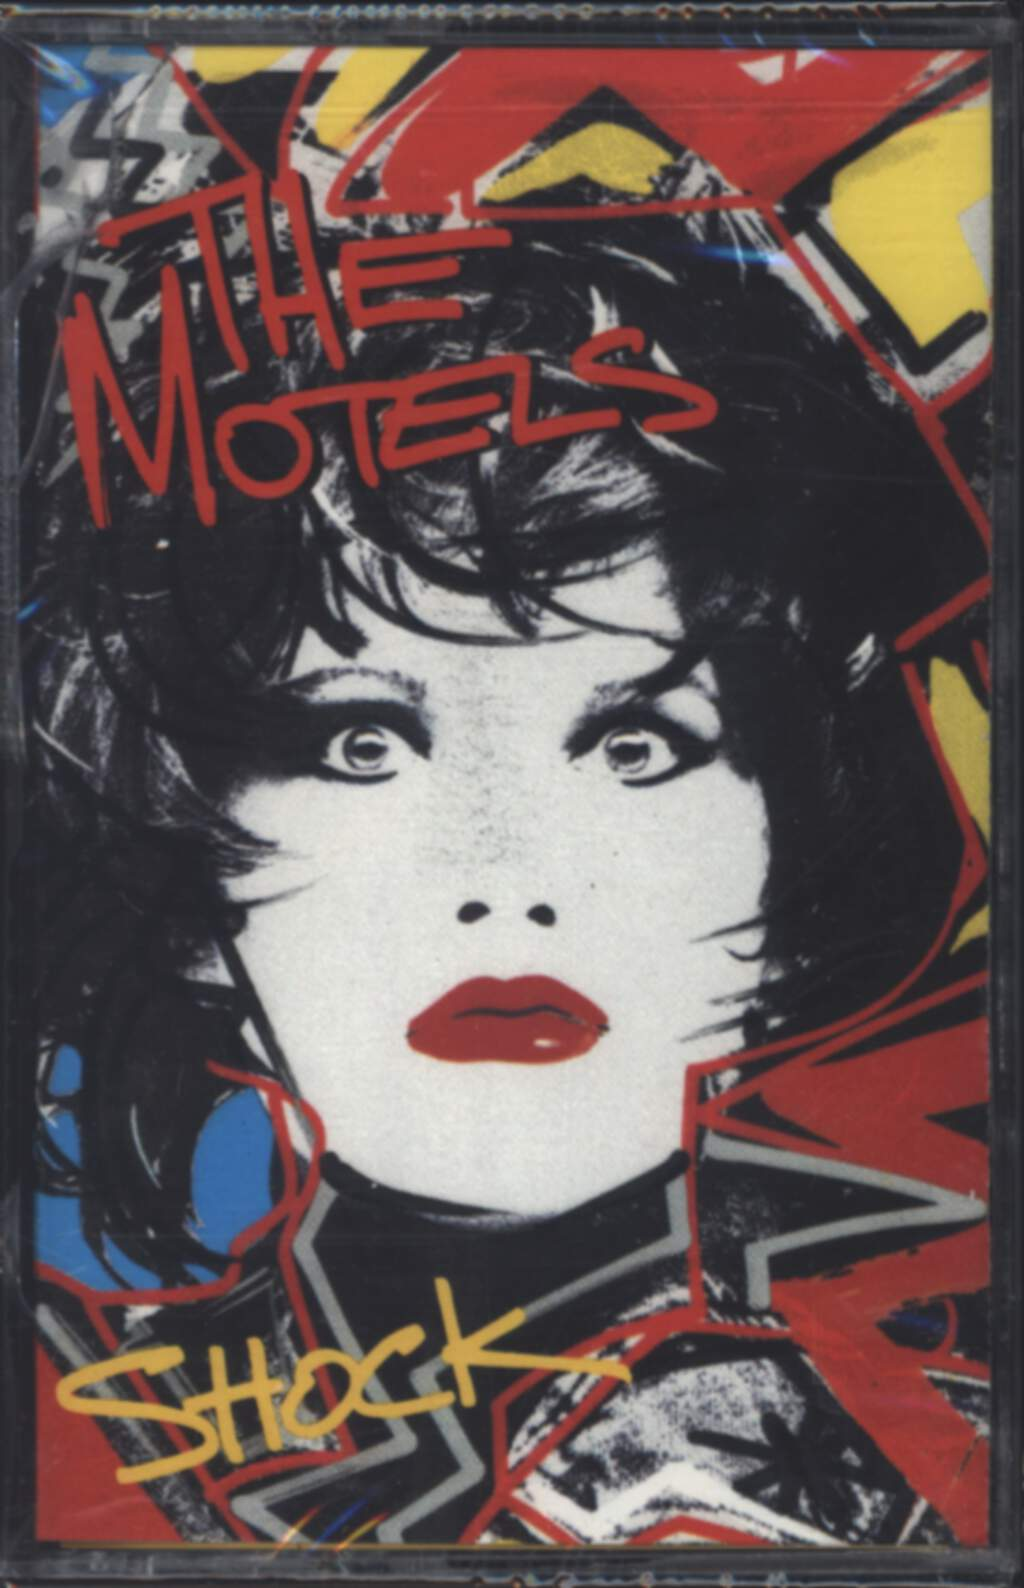 The Motels: Shock, Tape